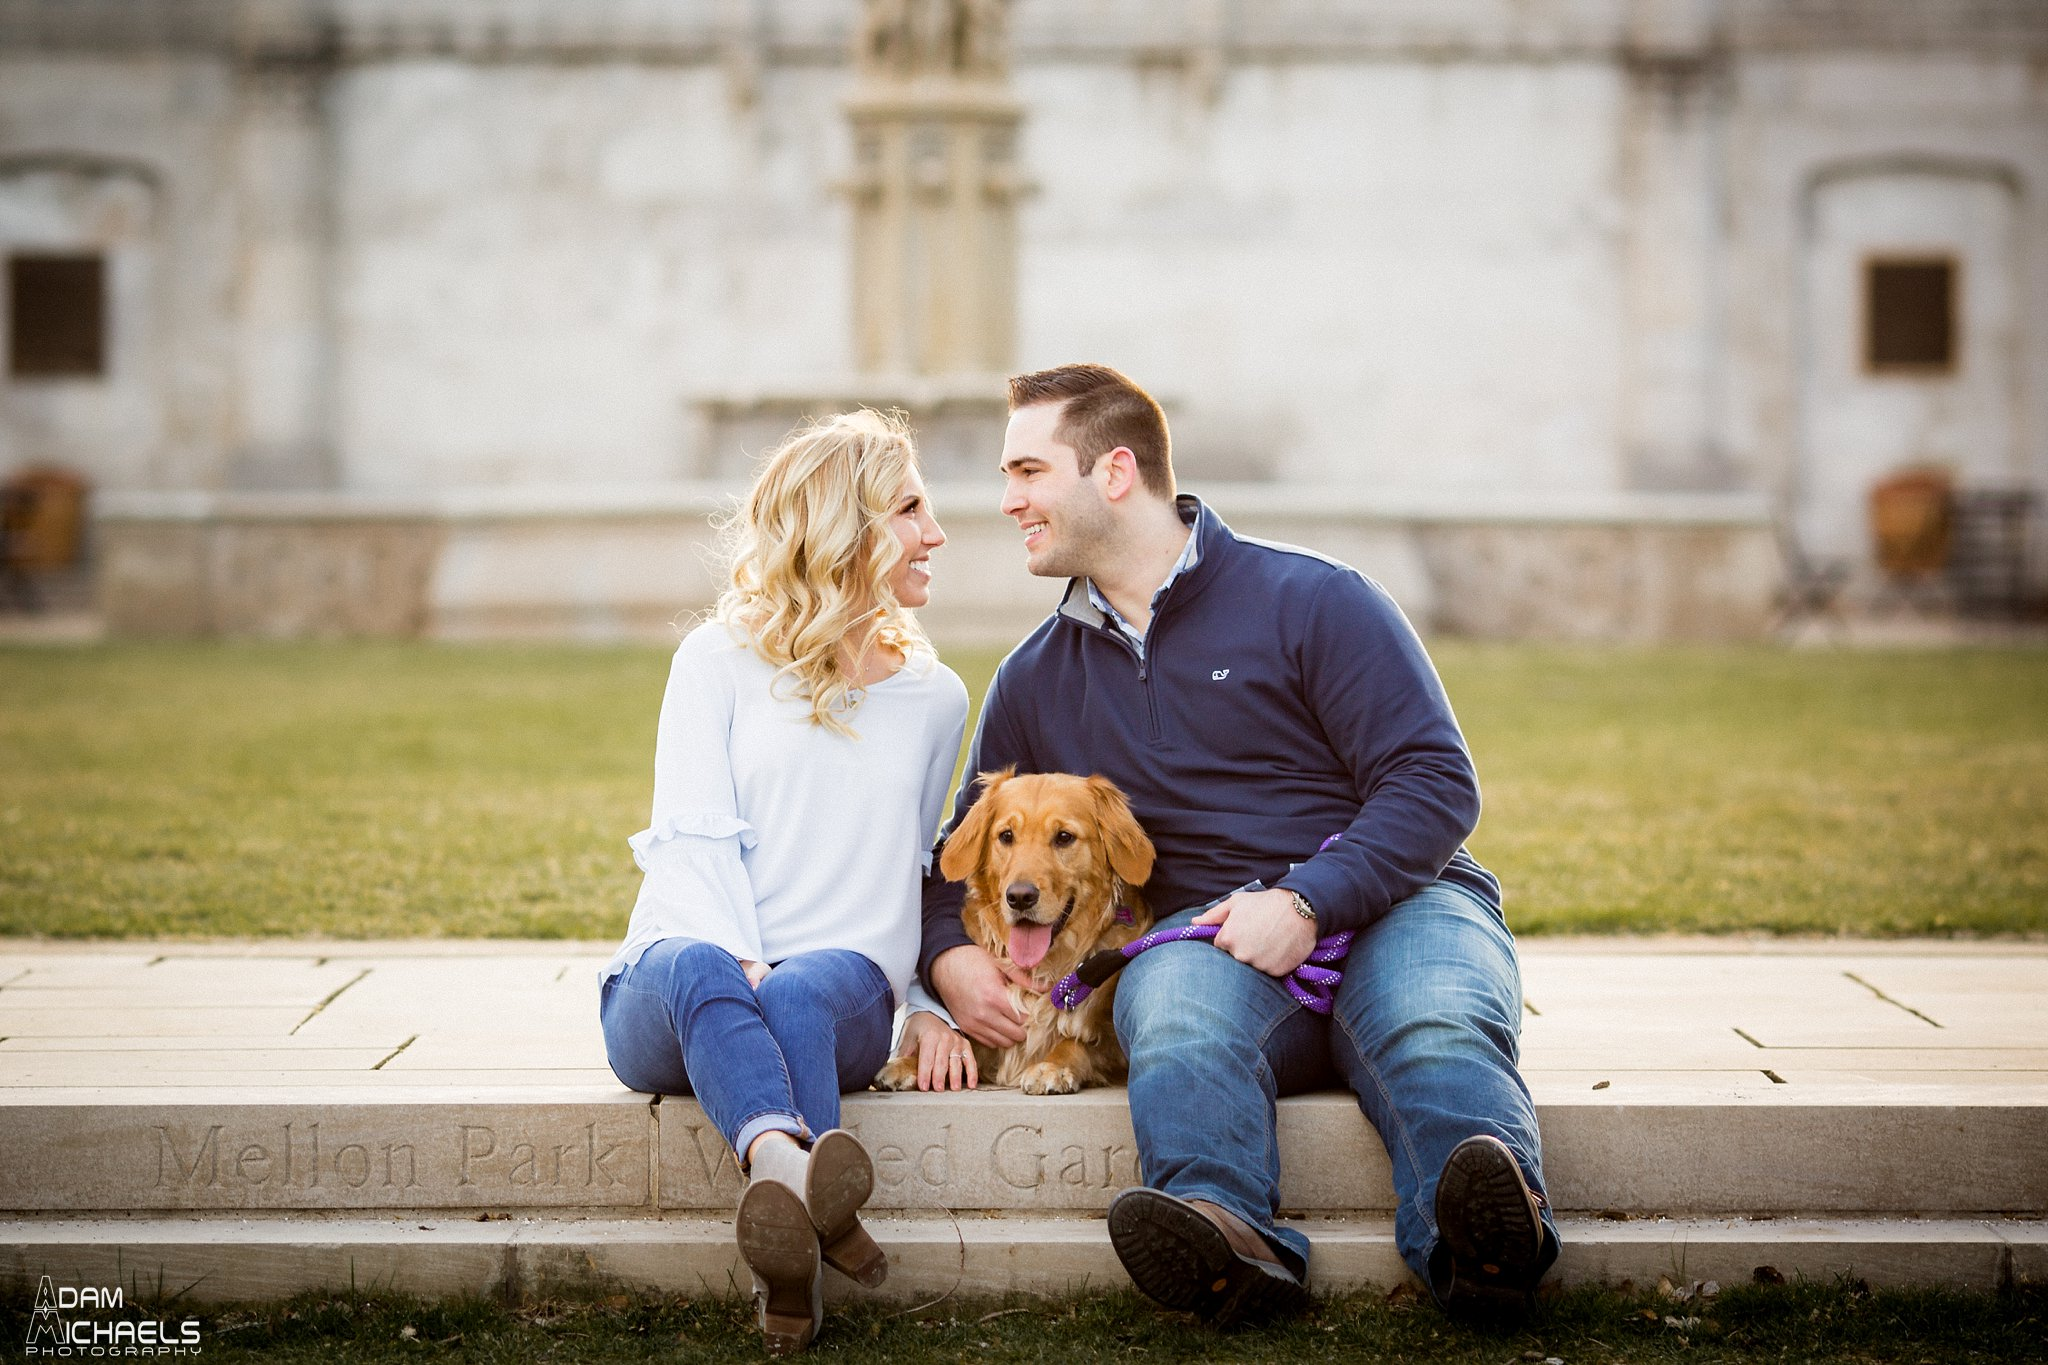 Mellon Park Engagement Save the Date Photos-13.jpg